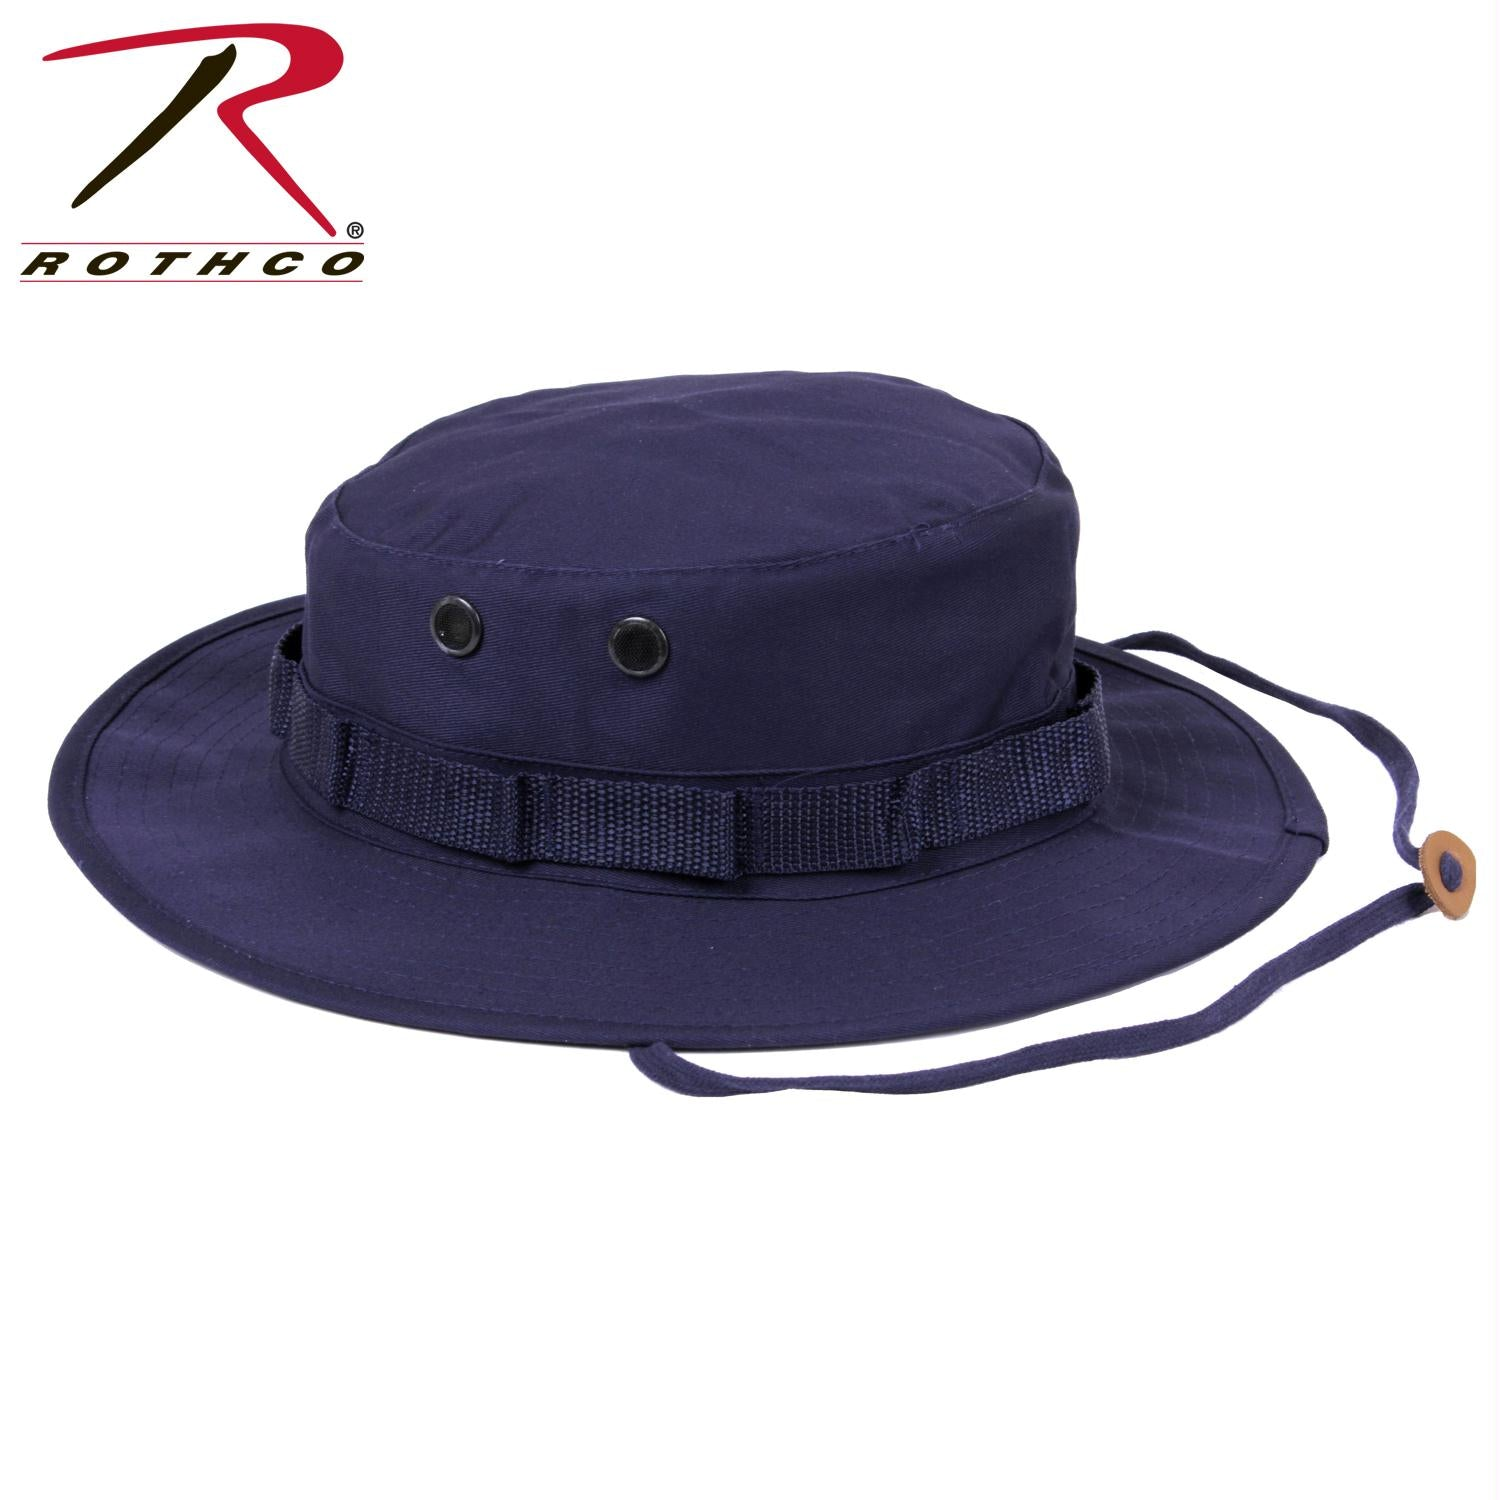 Rothco Boonie Hat - Navy Blue / 7 1/2